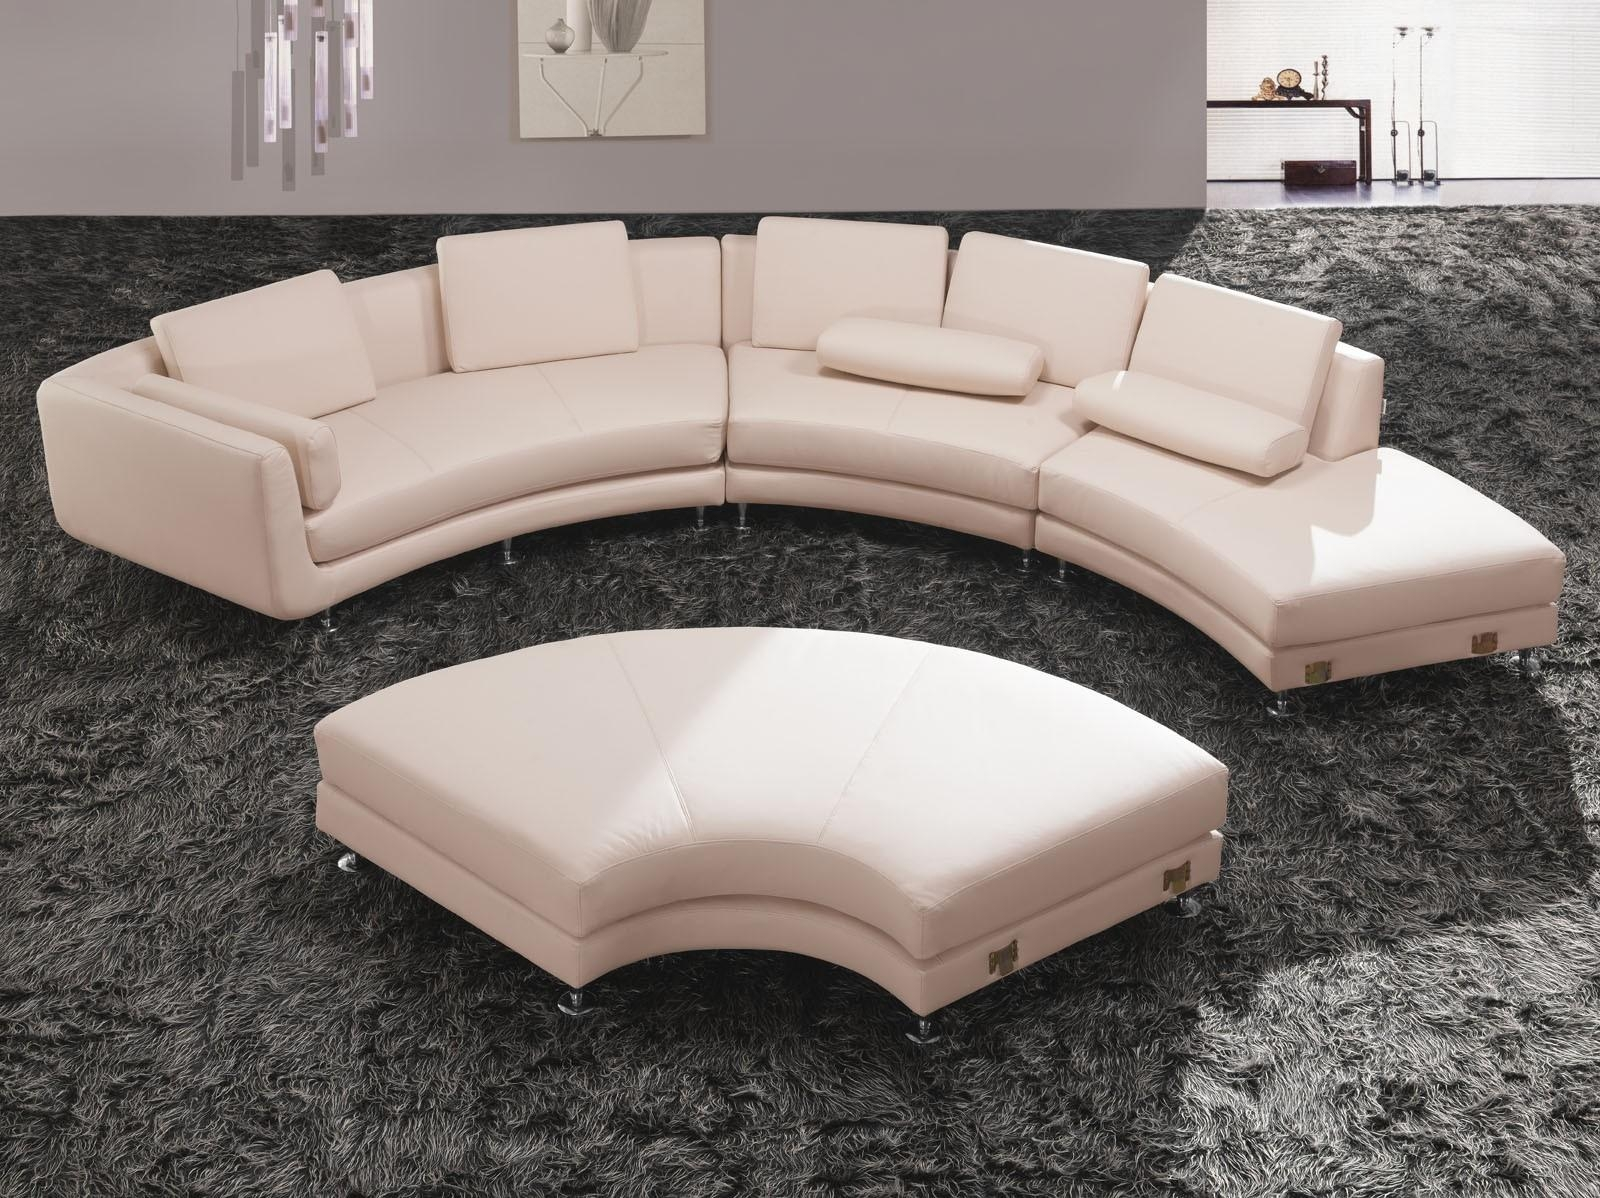 Circular Sectional Sofa Canada | Tehranmix Decoration Inside Circular Sectional Sofa (View 4 of 15)